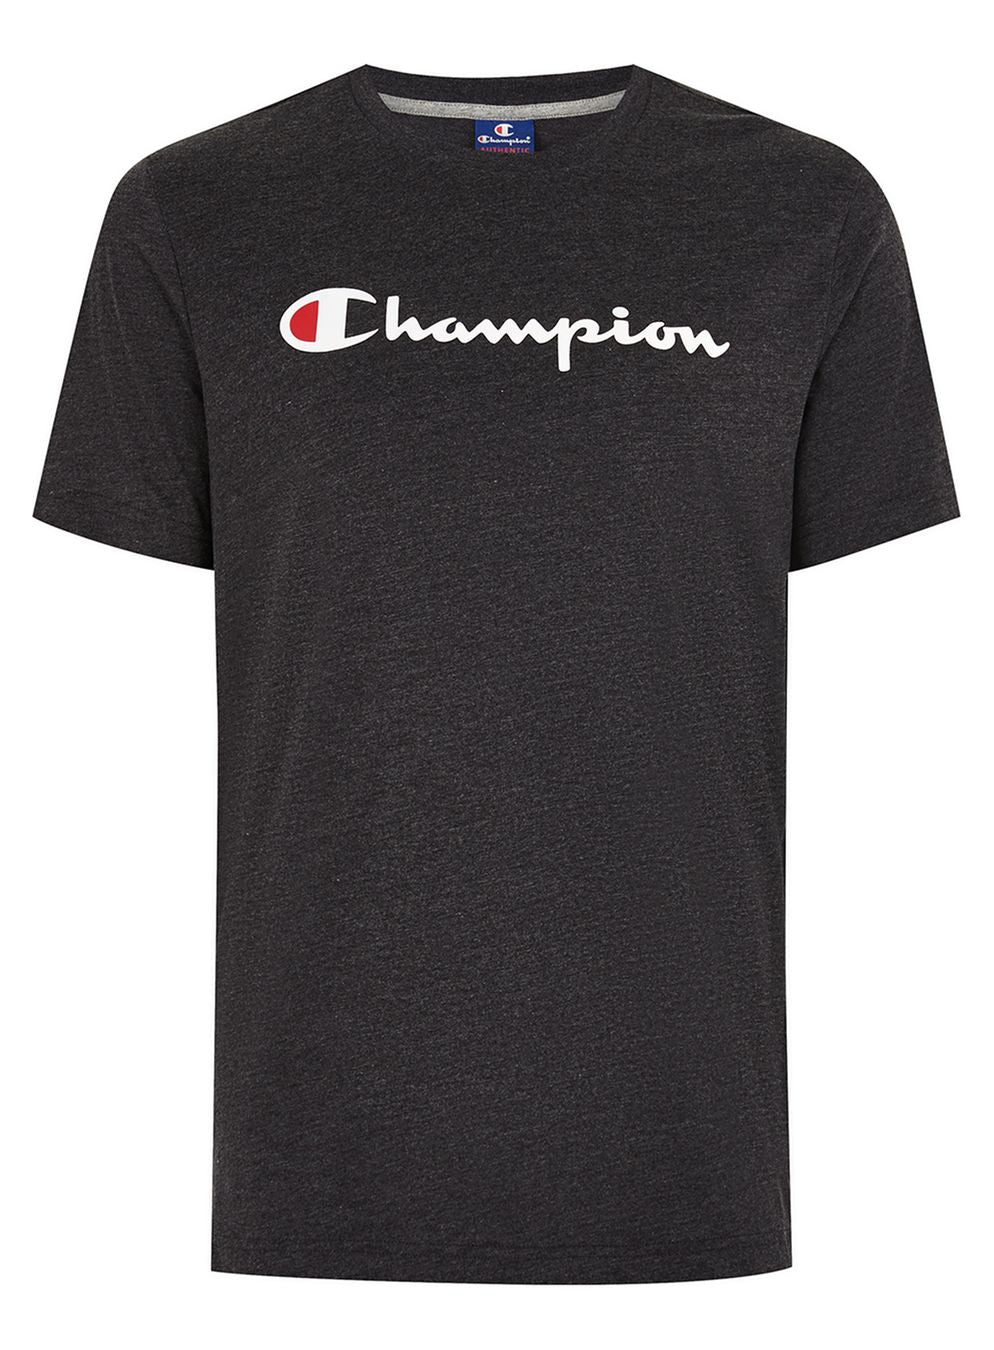 CHAMPION SCRIPT T-SHIRT - MEN'S BLACK